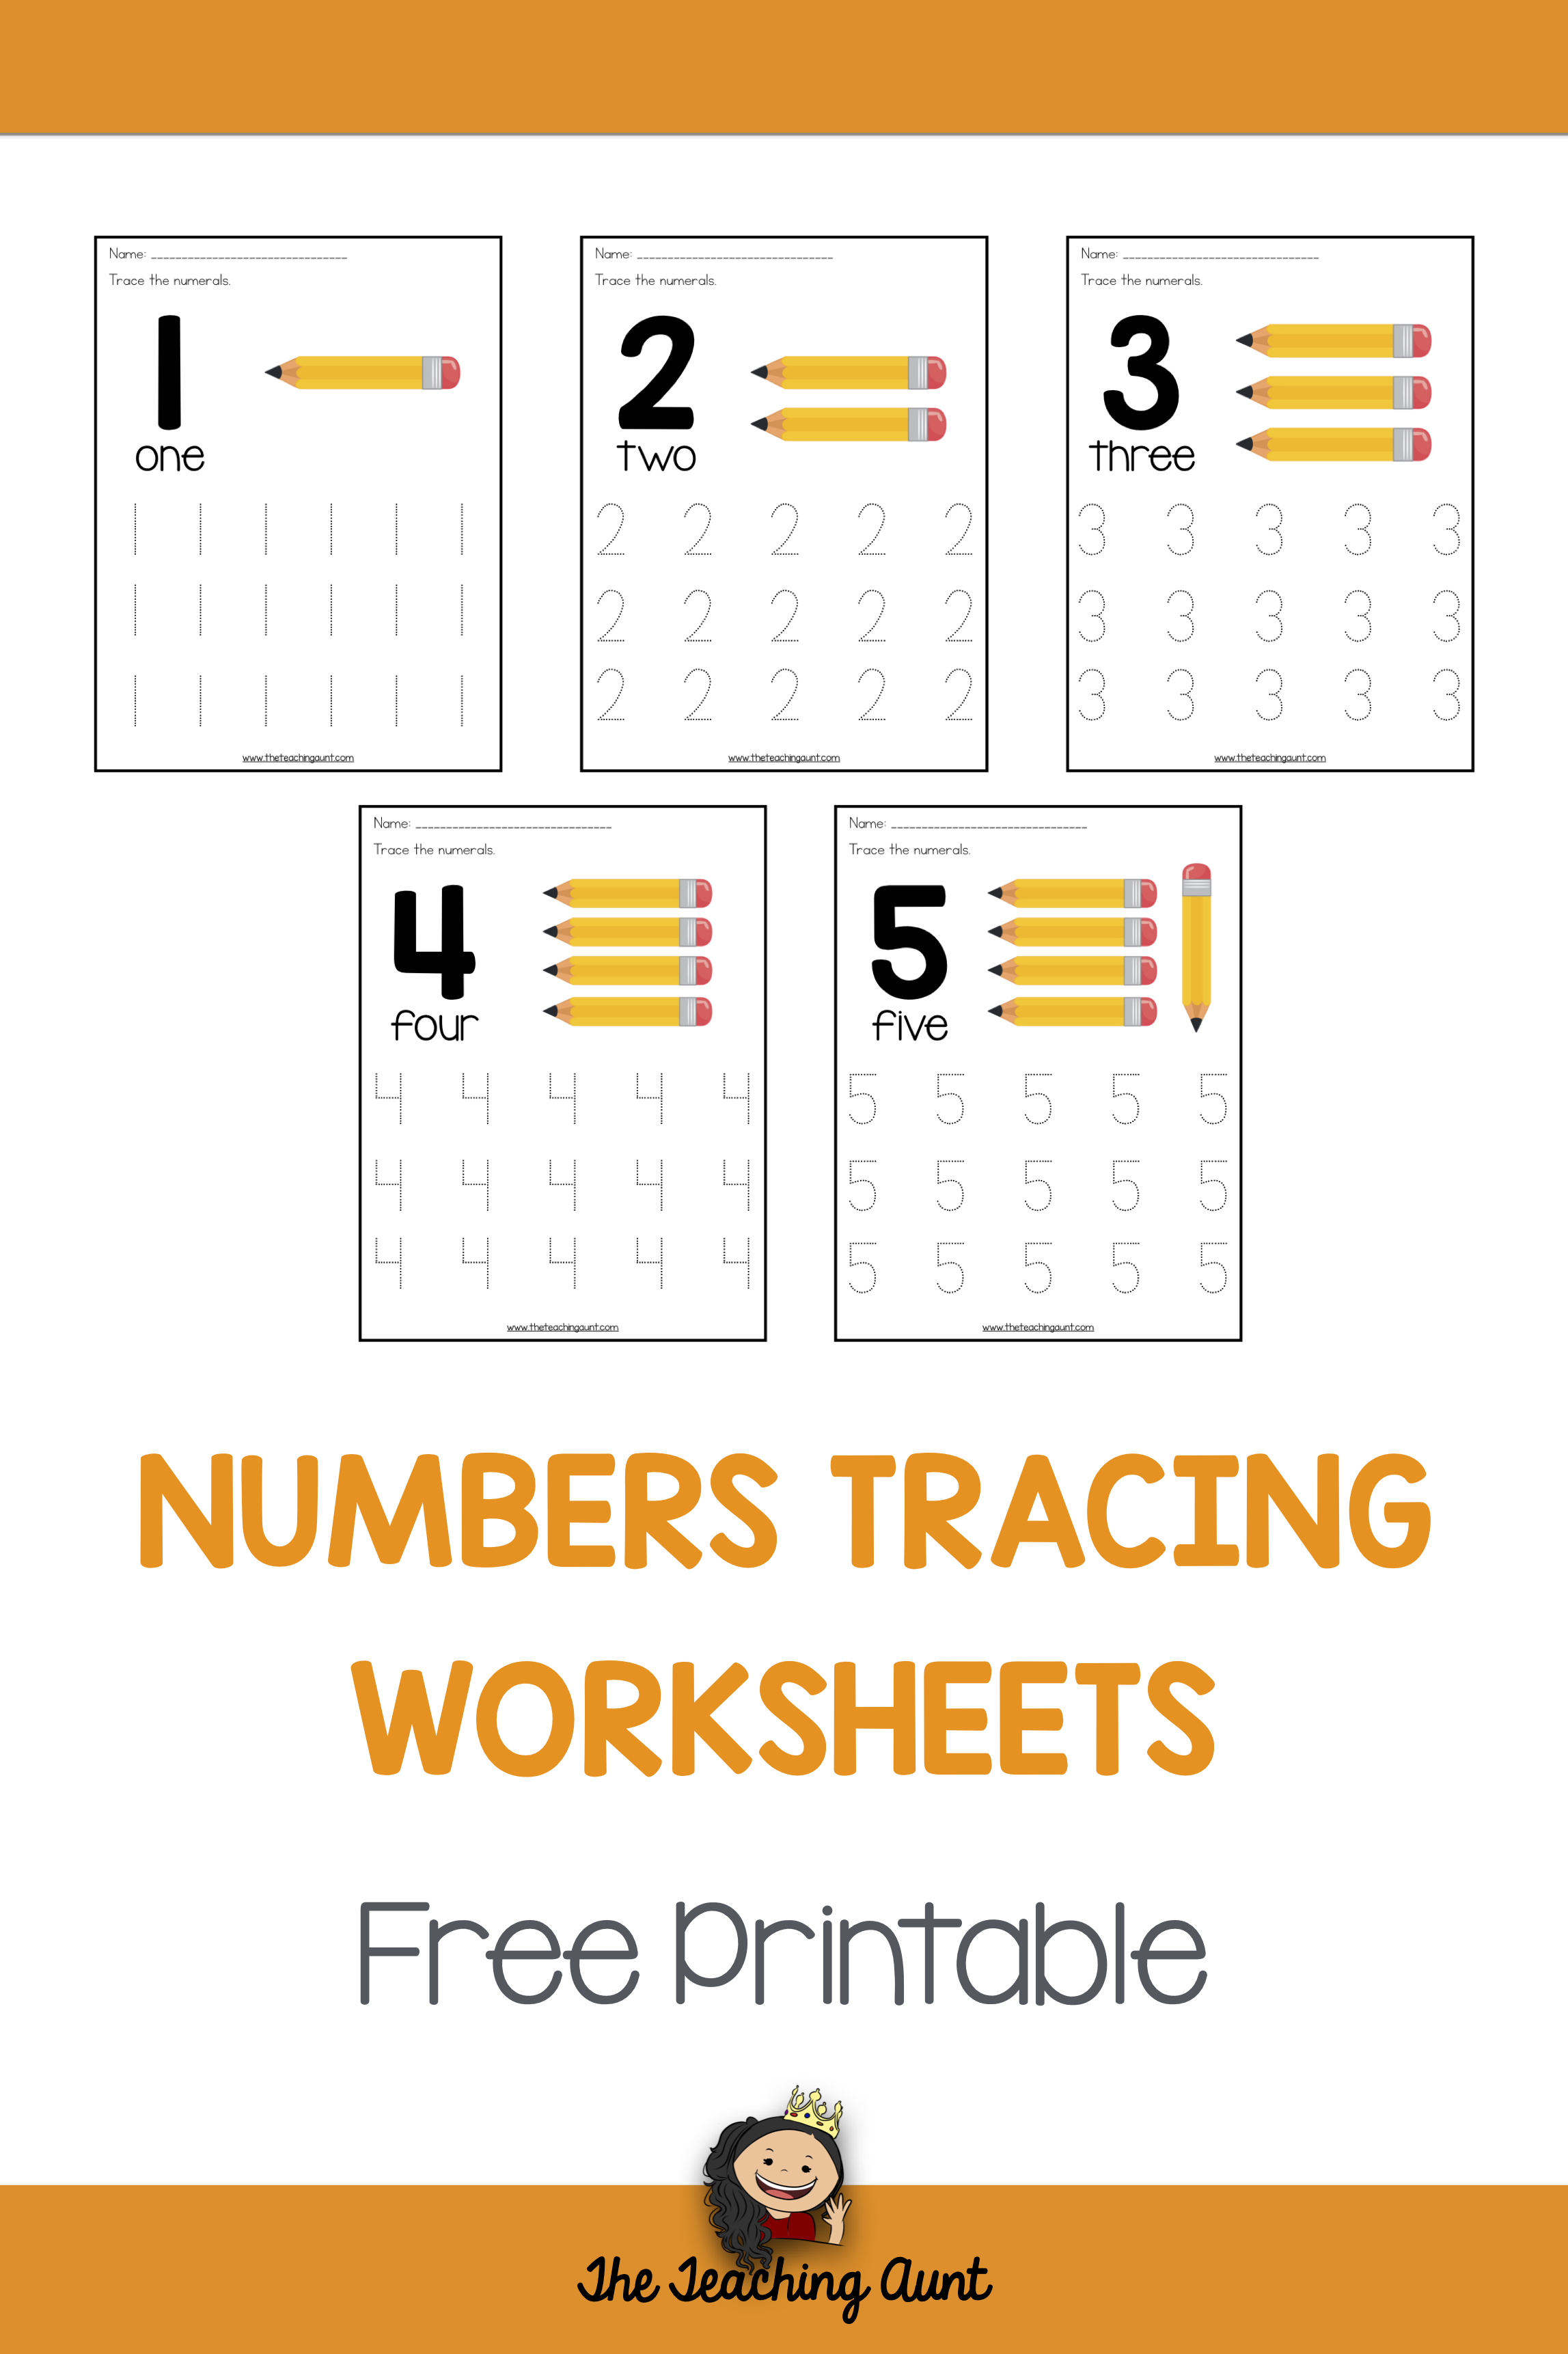 Number Tracing Worksheets For Preschoolers With Images